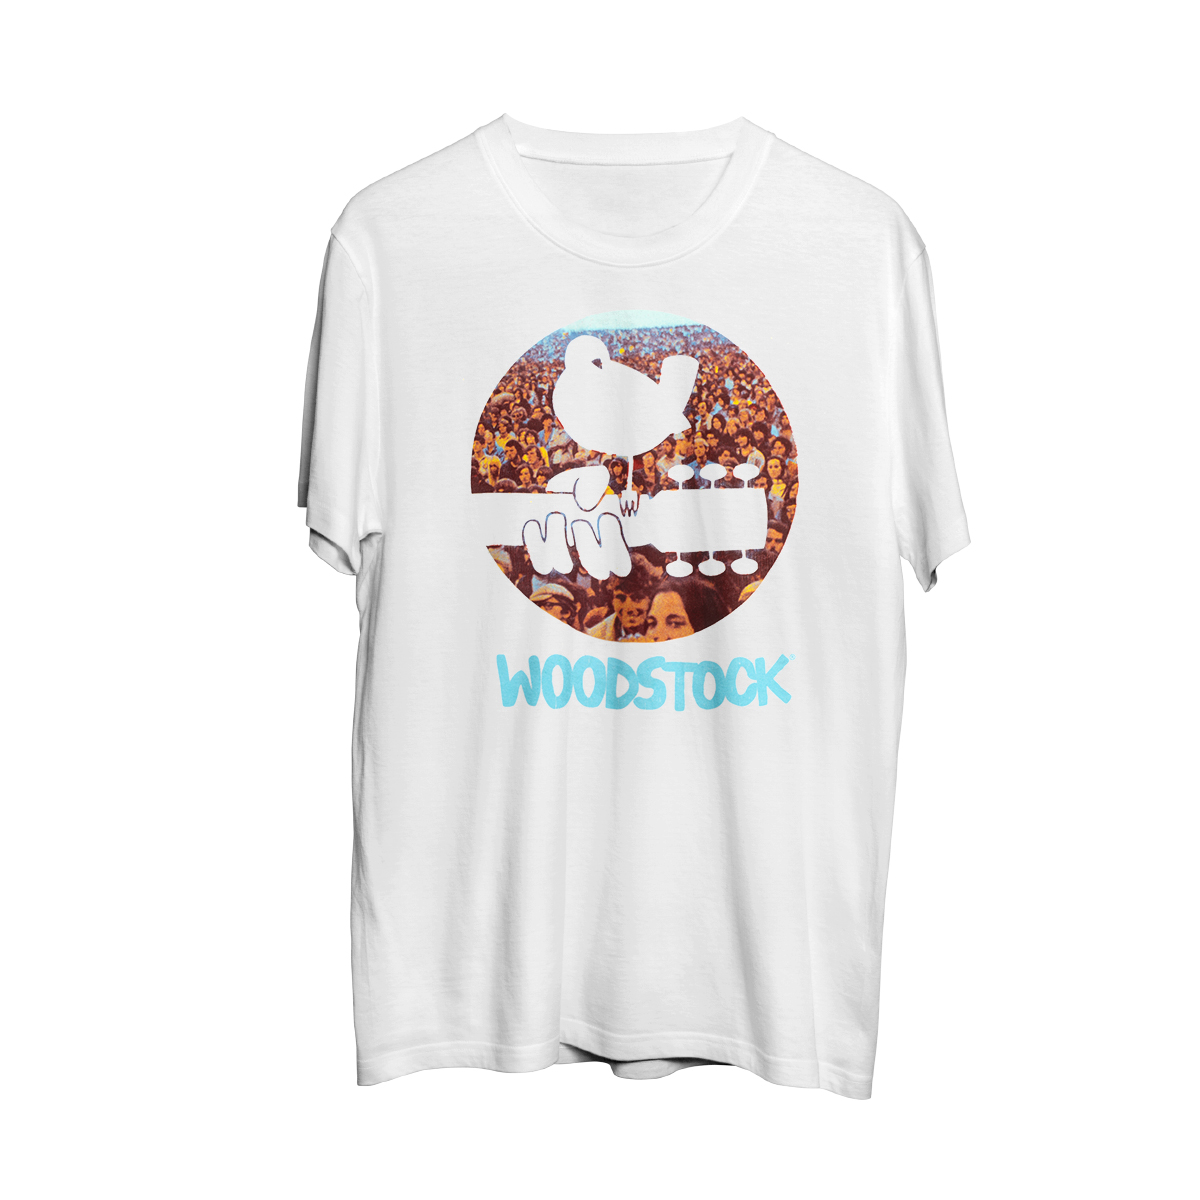 Woodstock Audience & Logo T-shirt